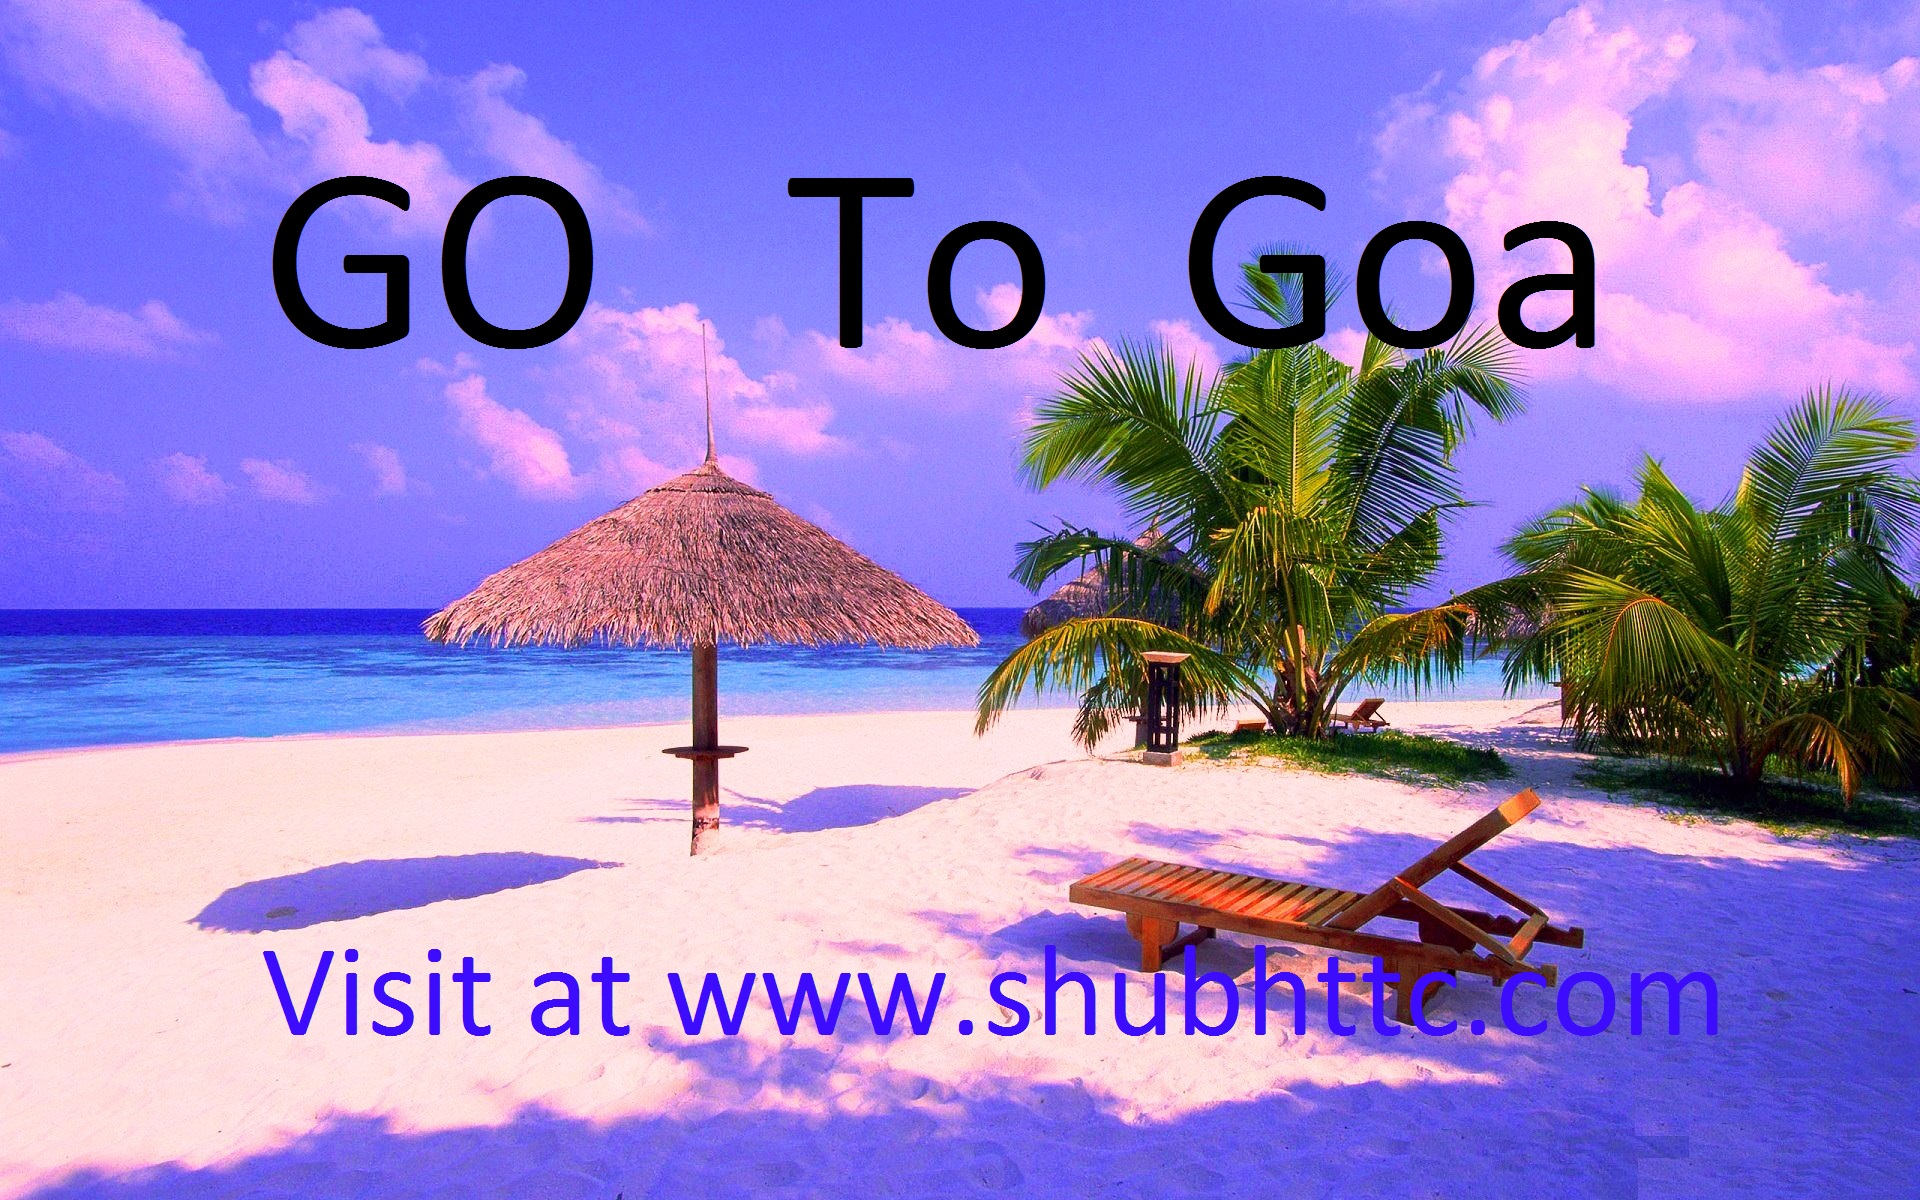 2 Night / 3 Days Go to Goa Package